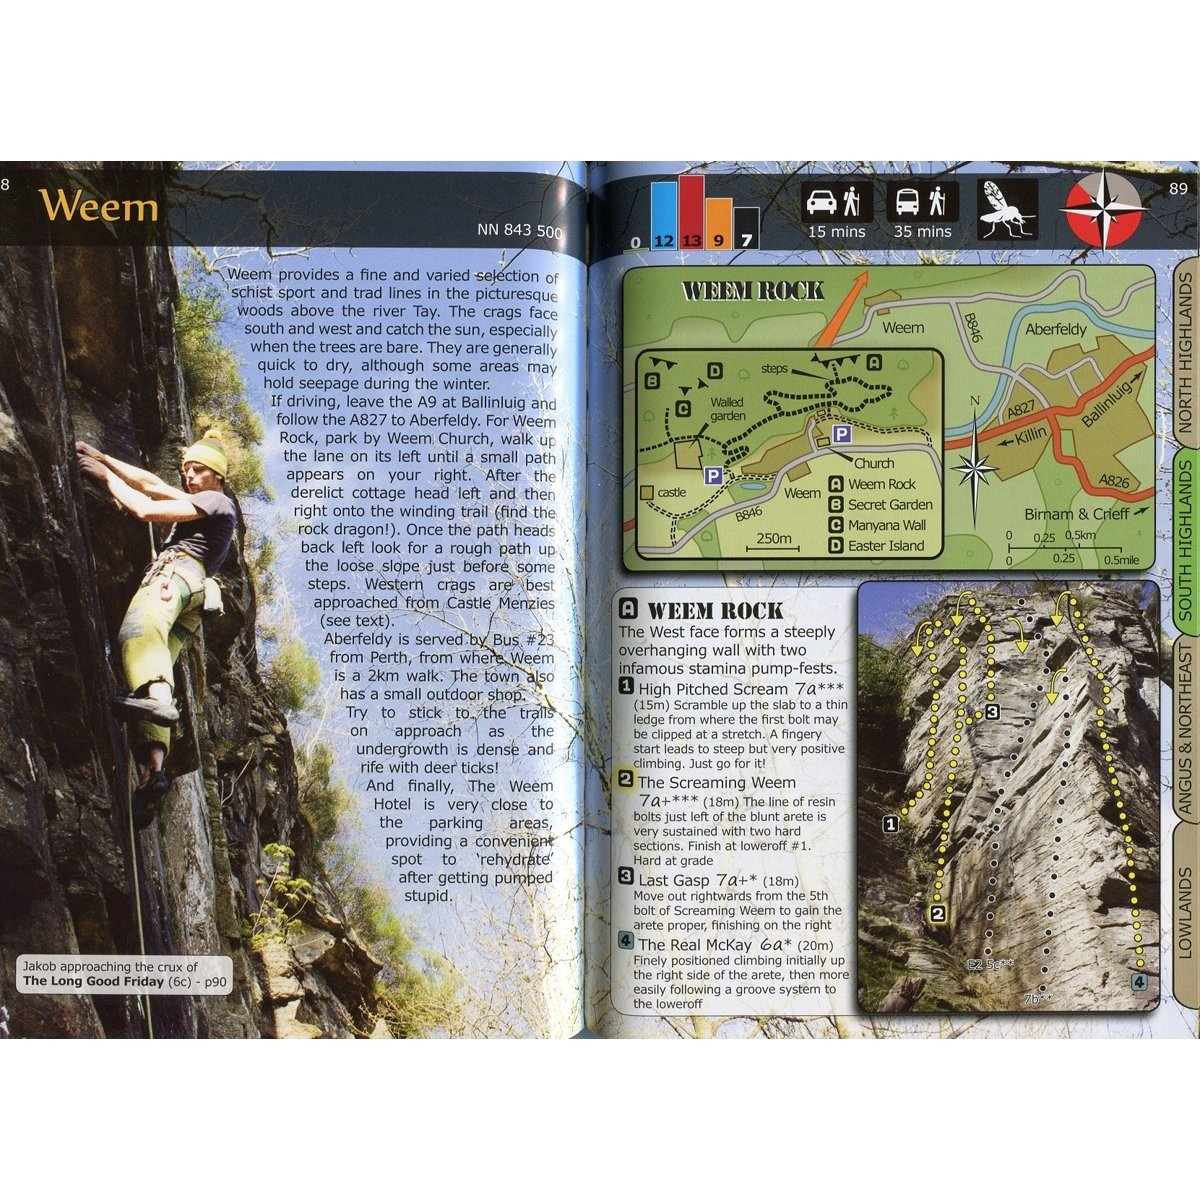 7a Max: Scottish Sport guide, example inside pages showing maps, photos and topos